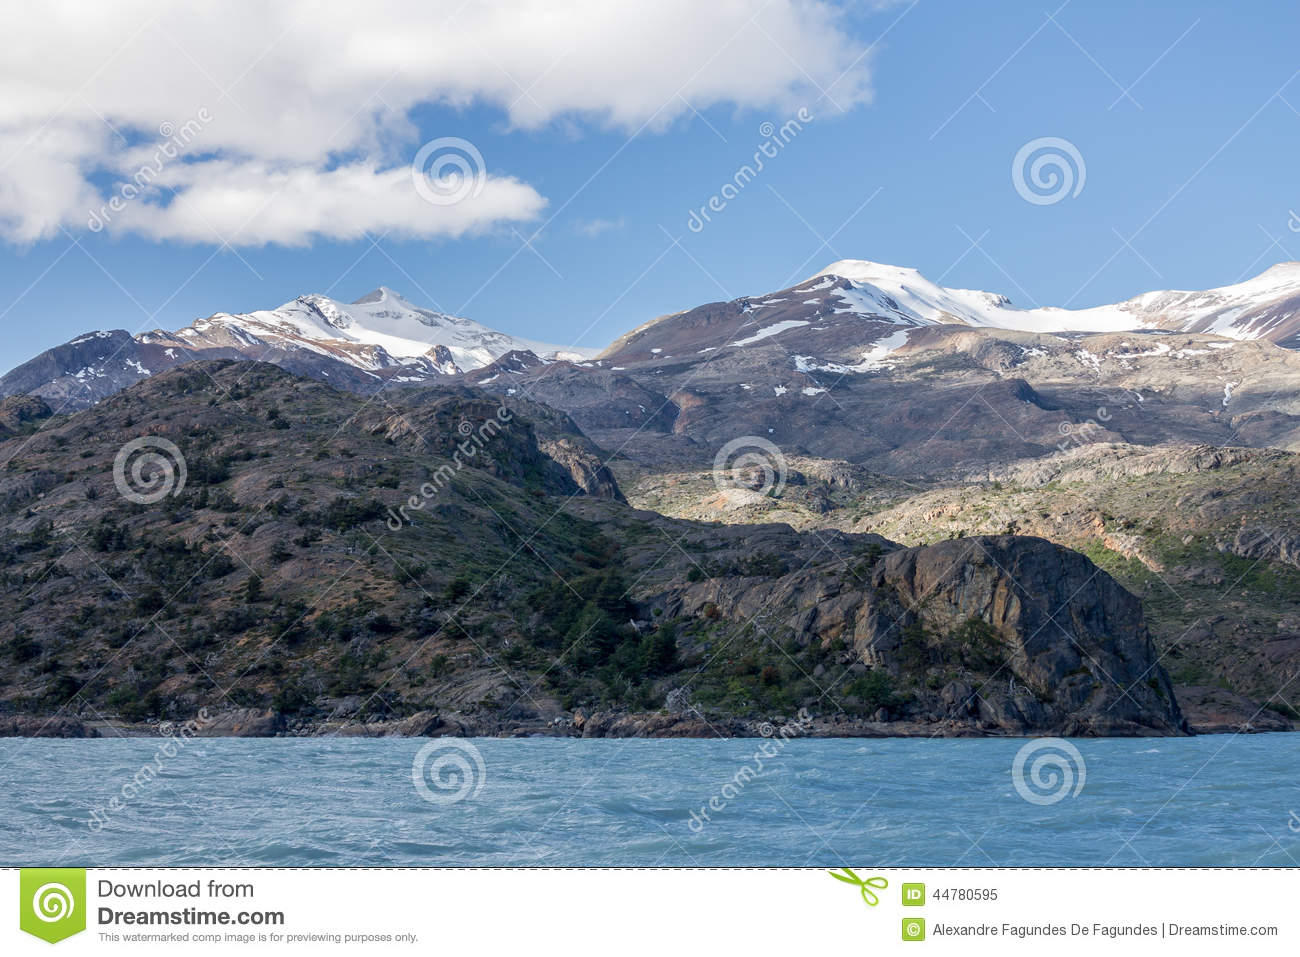 argentino lake el calafate argentina stock photo image clipart watercolor clip art lake free images